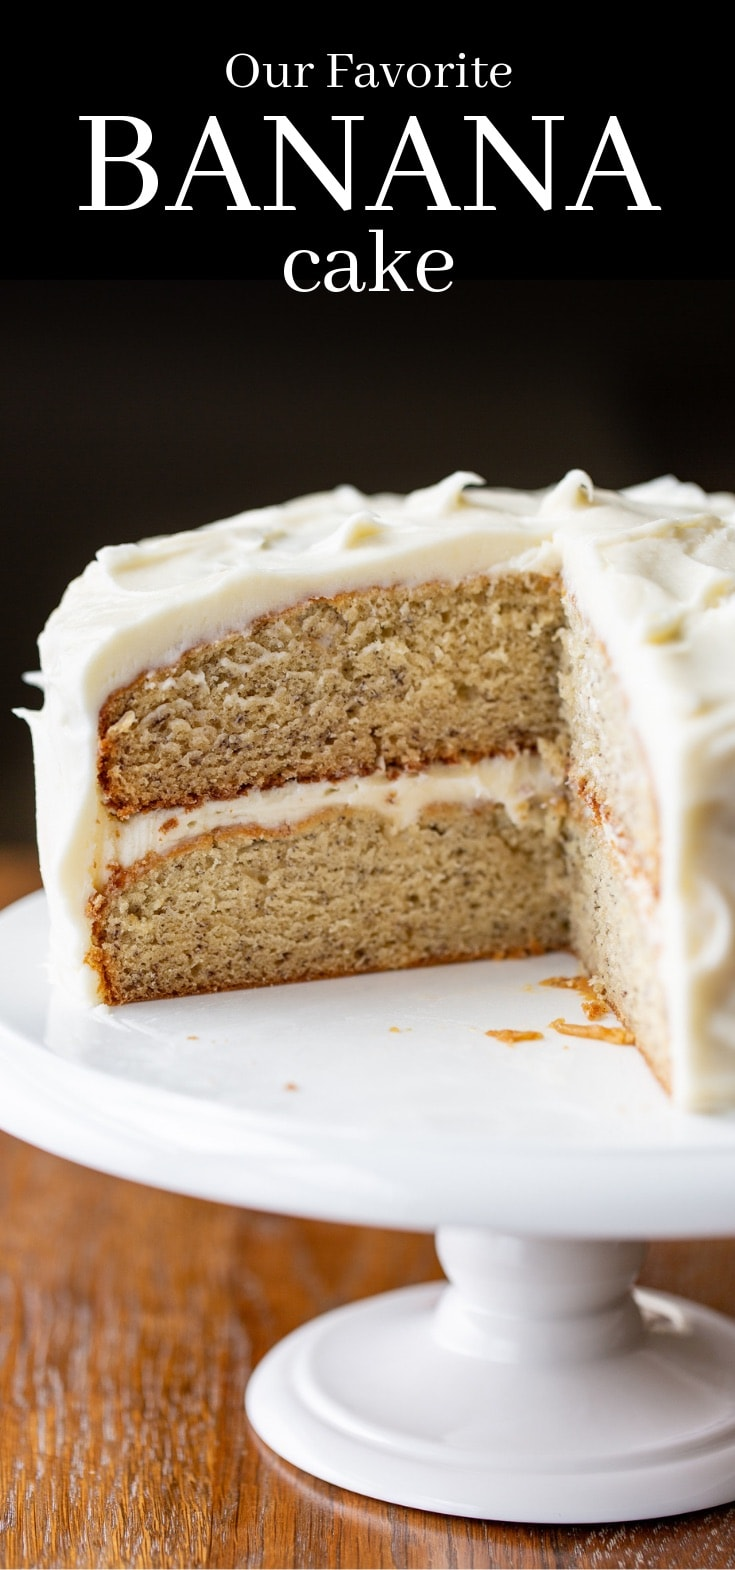 A two layer banana cake with cream cheese frosting sitting on a cake stand